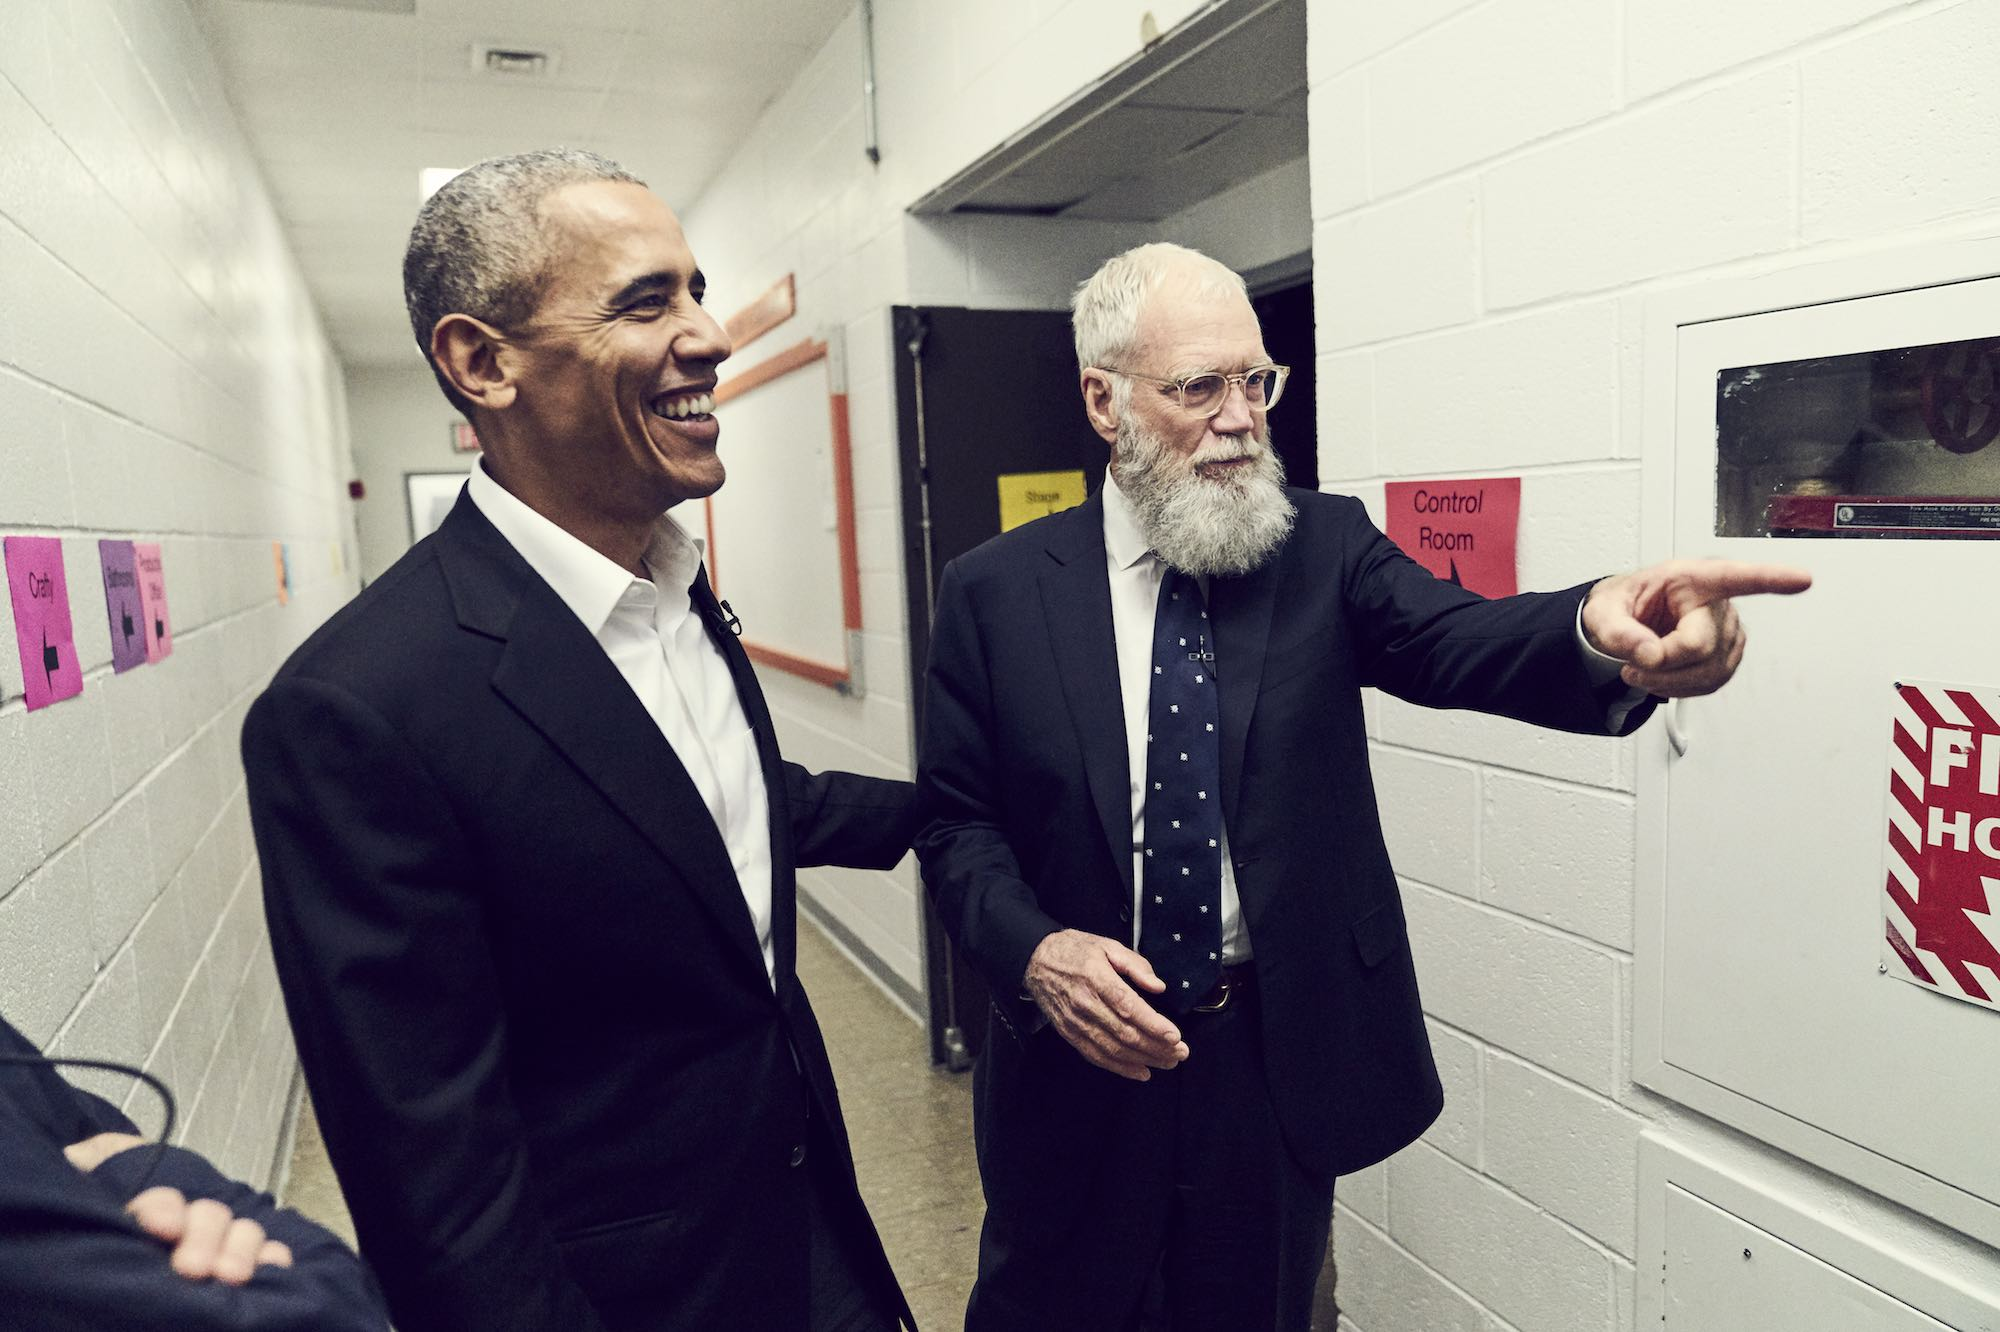 Obama to be David Letterman's first guest on Netflix talk show series